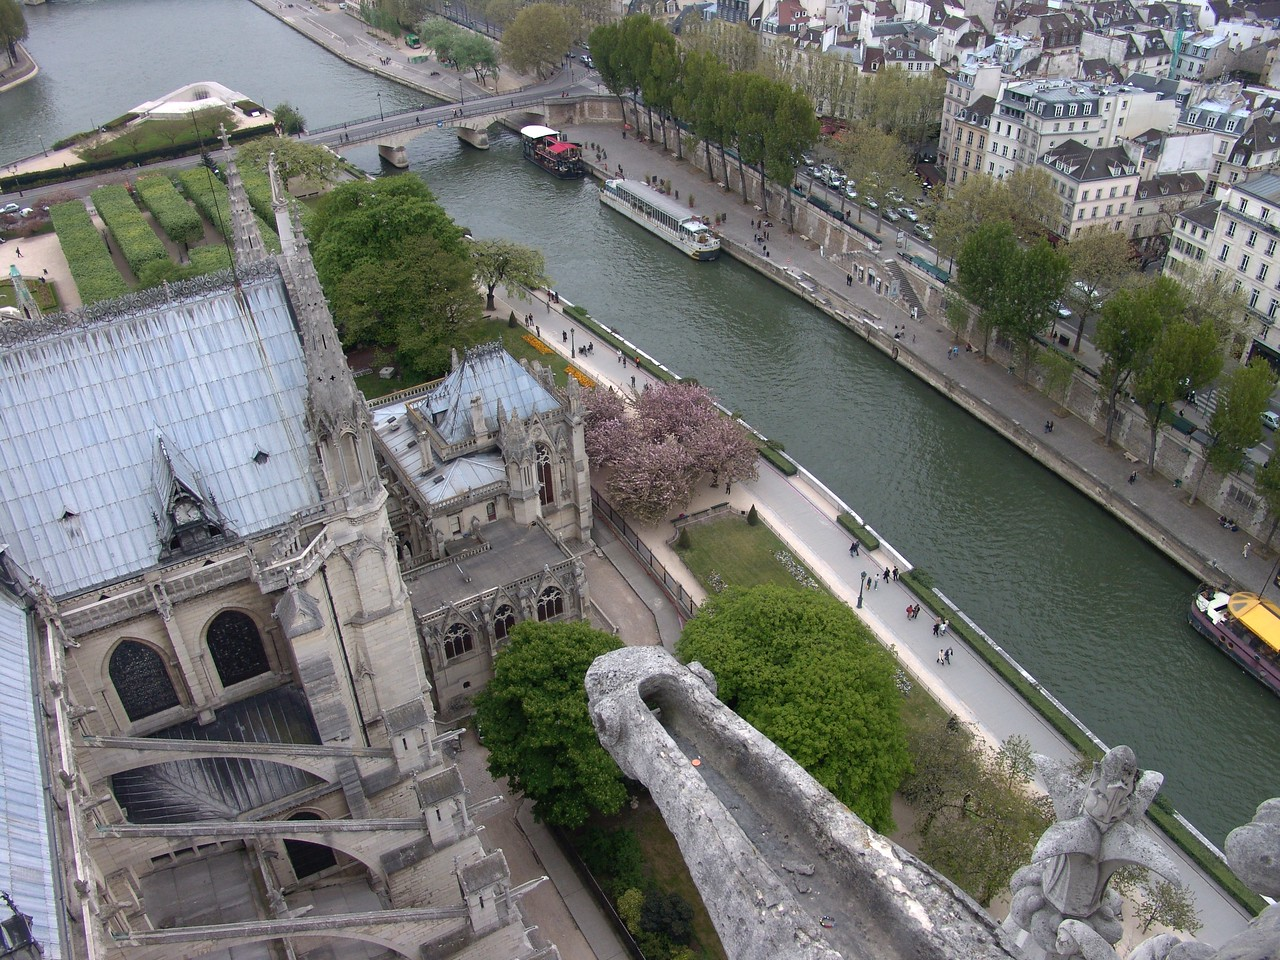 ND20: There is the Seine River running below us. In the foreground see the gargoyle drainage spout.